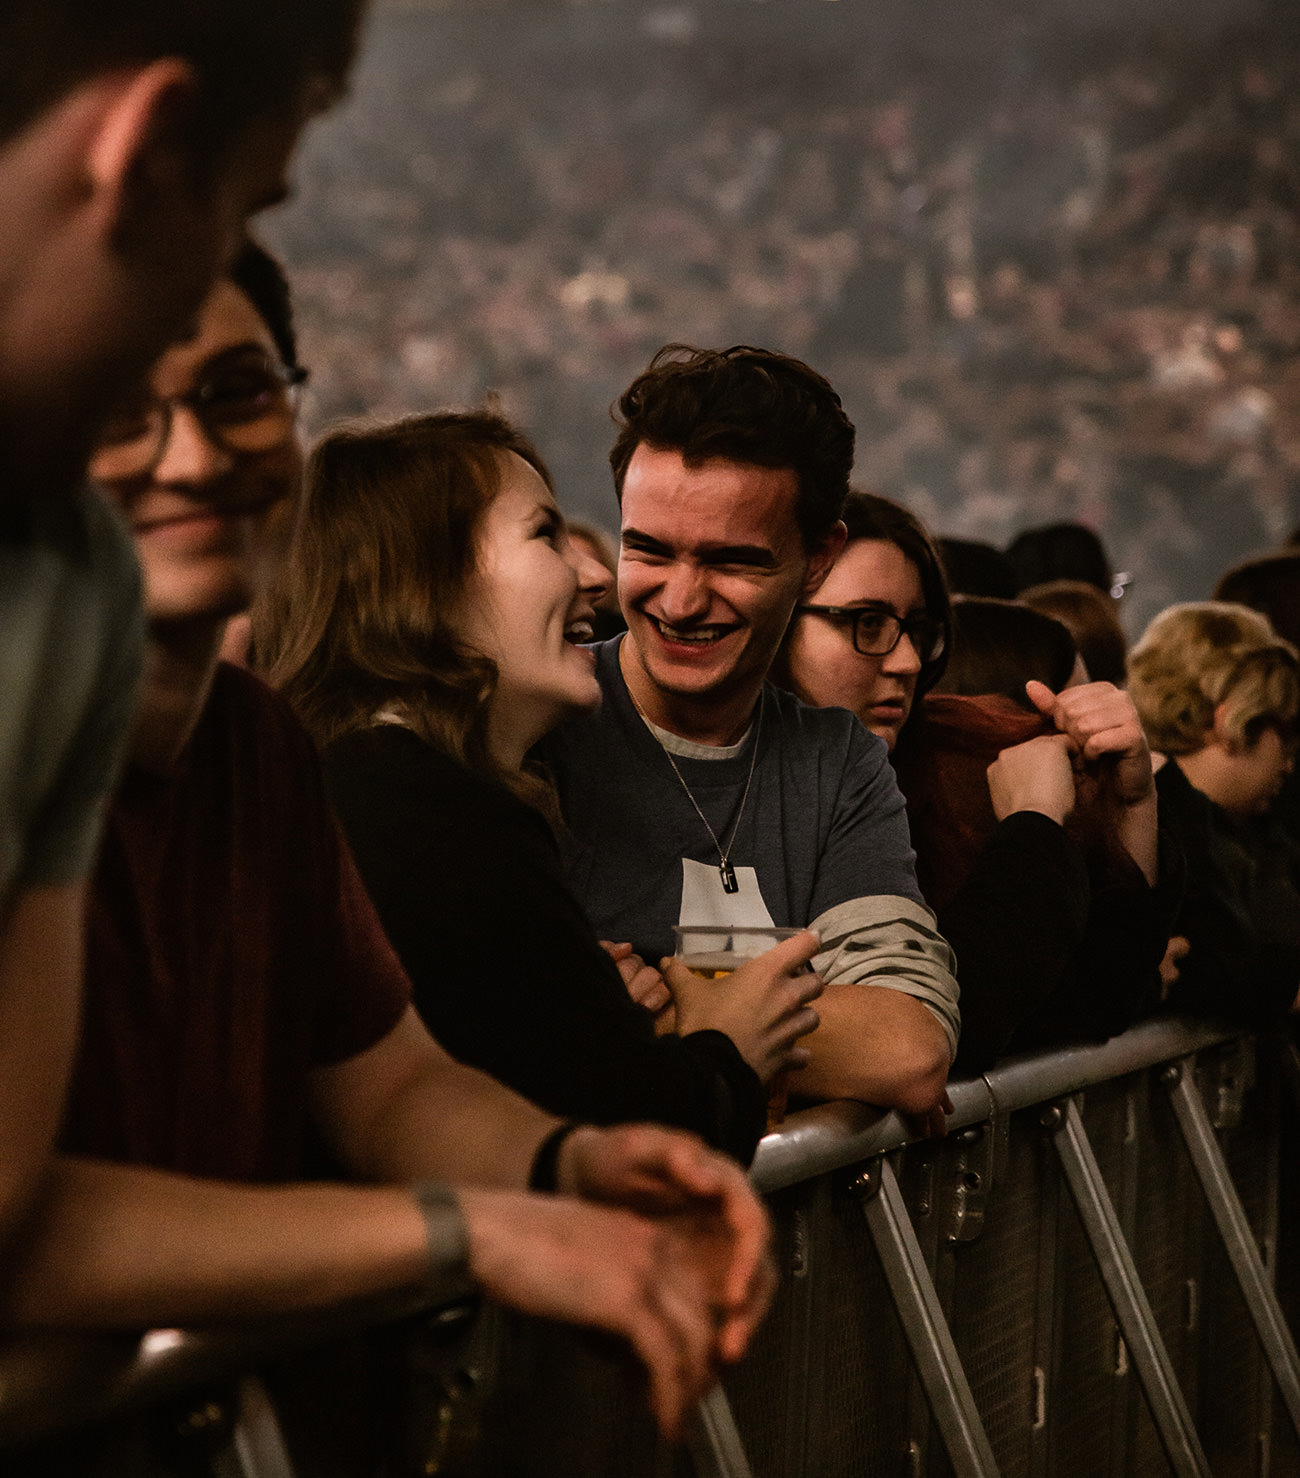 friends smiling and talking in the middle of the crowd